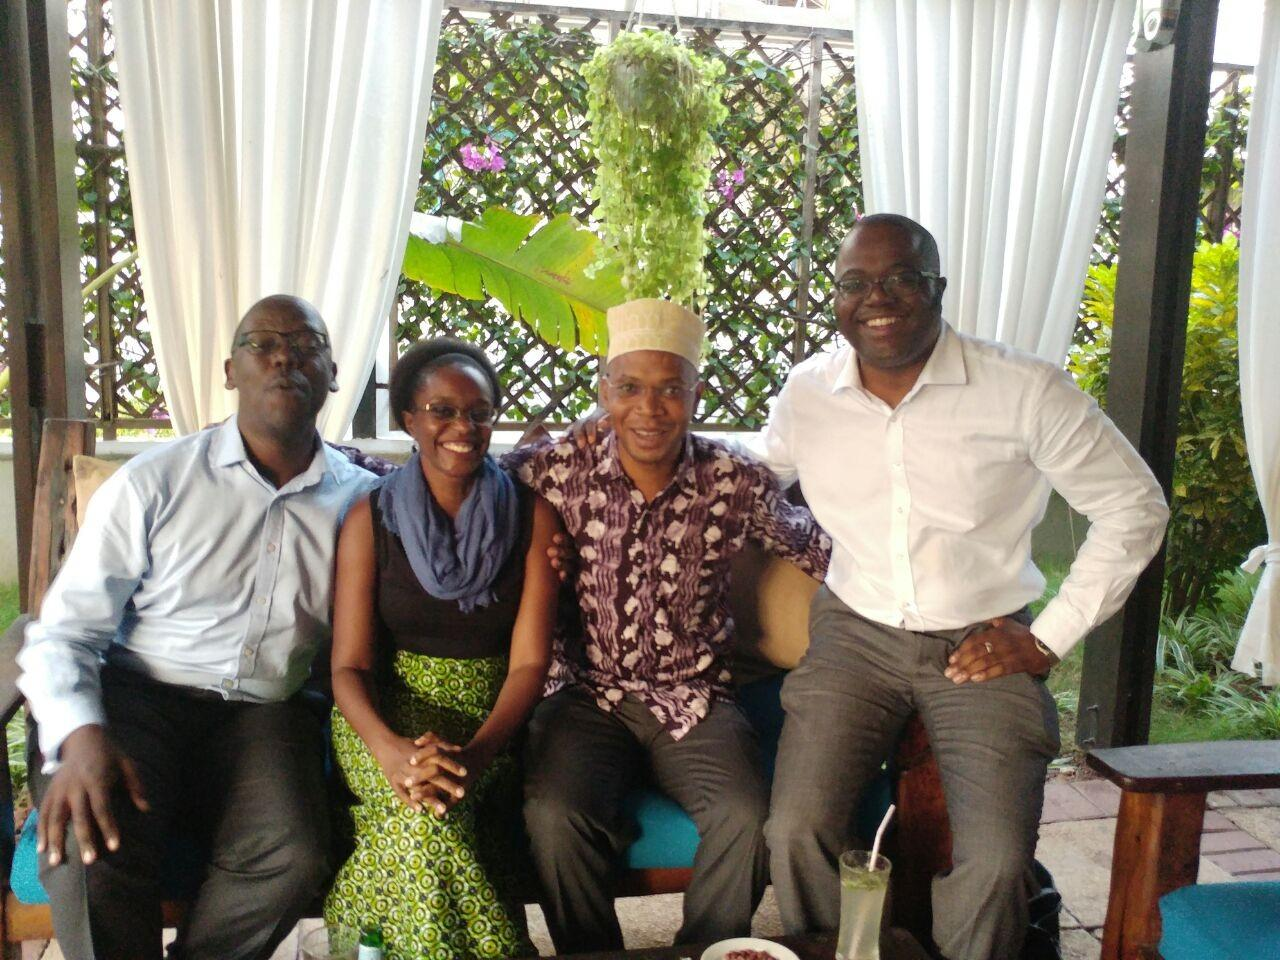 Aidan Eyakuze, Neema Ndunguru, January Makamba, and Charles Washoma meeting in Dar es Salaam